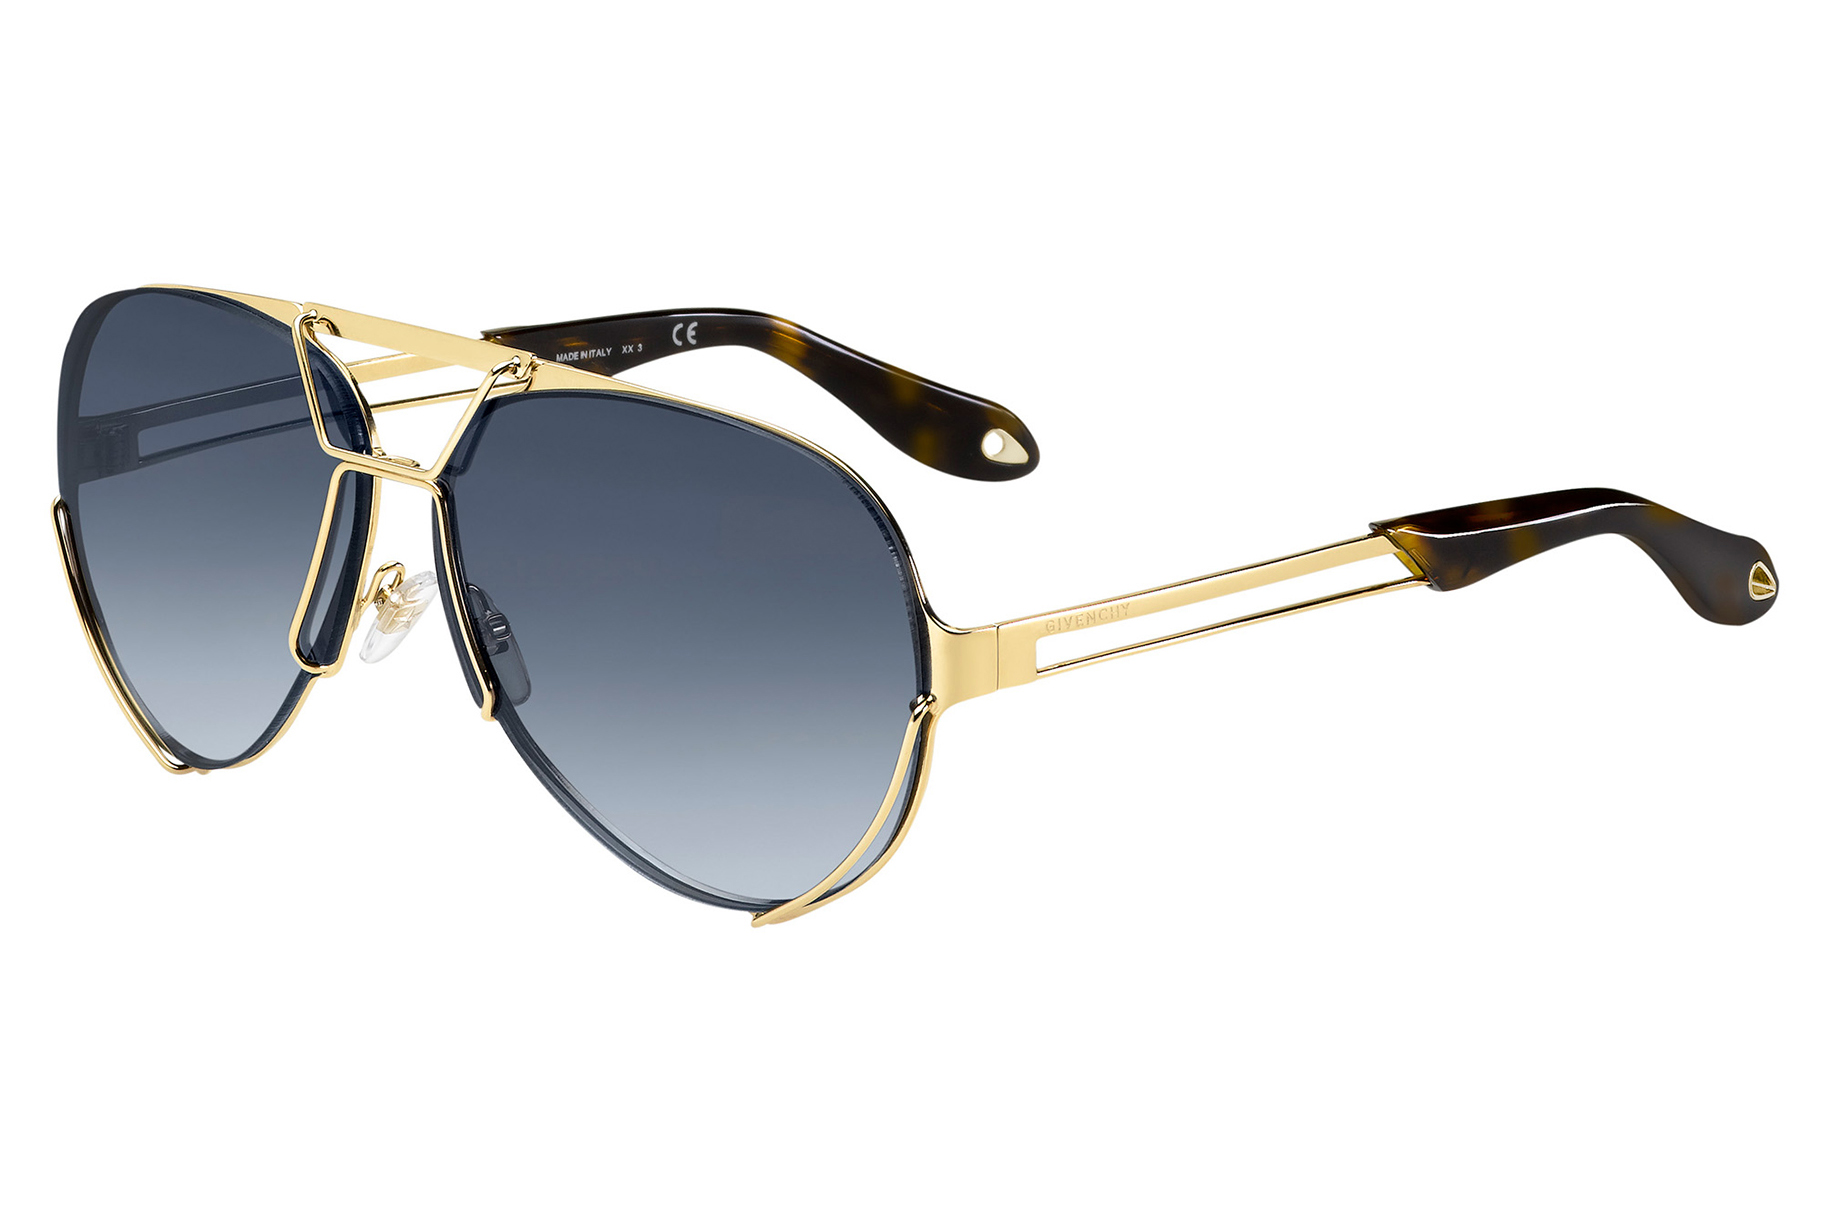 385c7d3ee3e3 ... Givenchy Sunglasses - product design ...